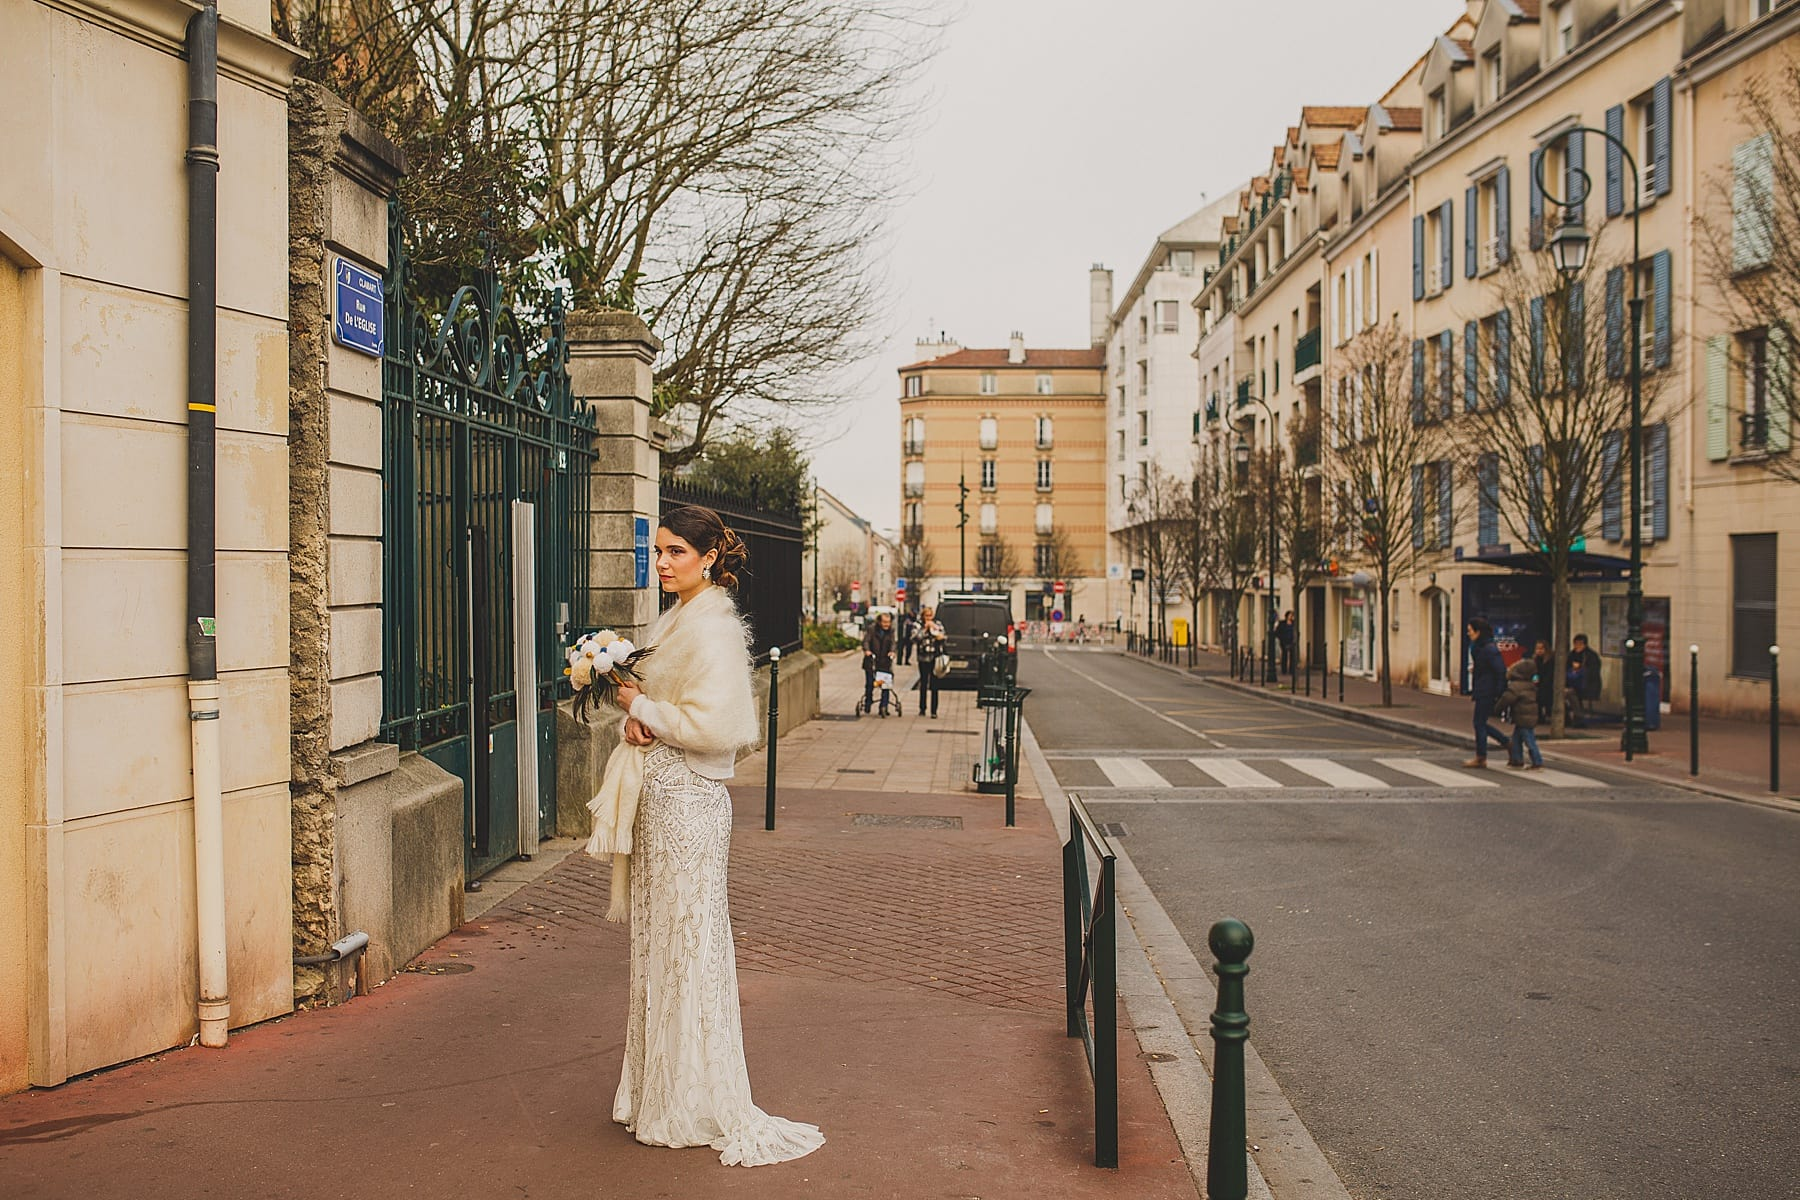 paris wedding photographer,destination wedding,irish elopement photographer,city bridal style,mamie cocotte wedding,intimate ceremony,navyblur,ireland wedding photographer,